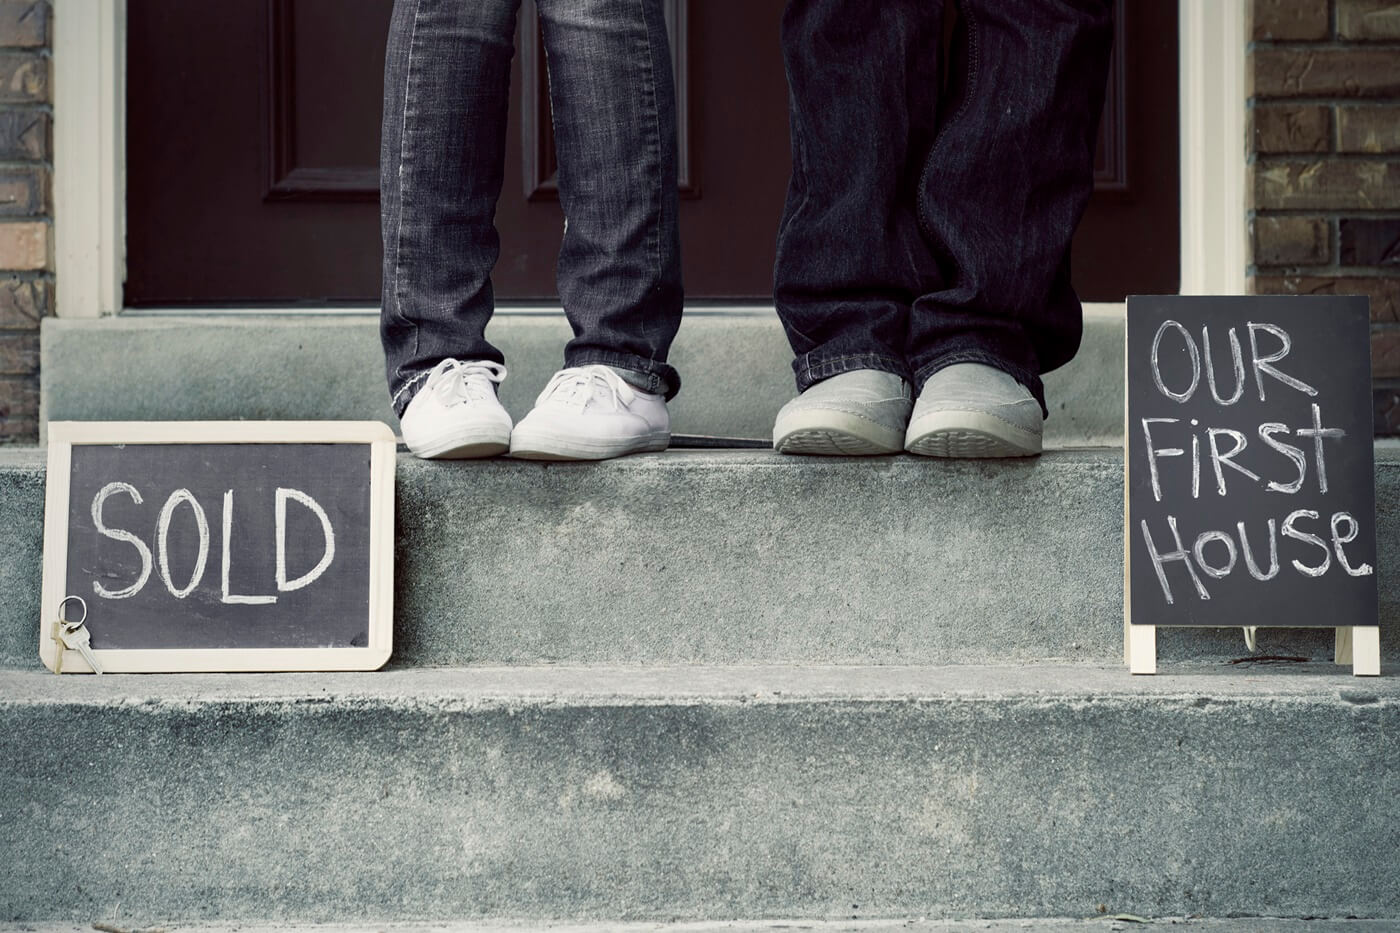 Considerations for first-time buyers